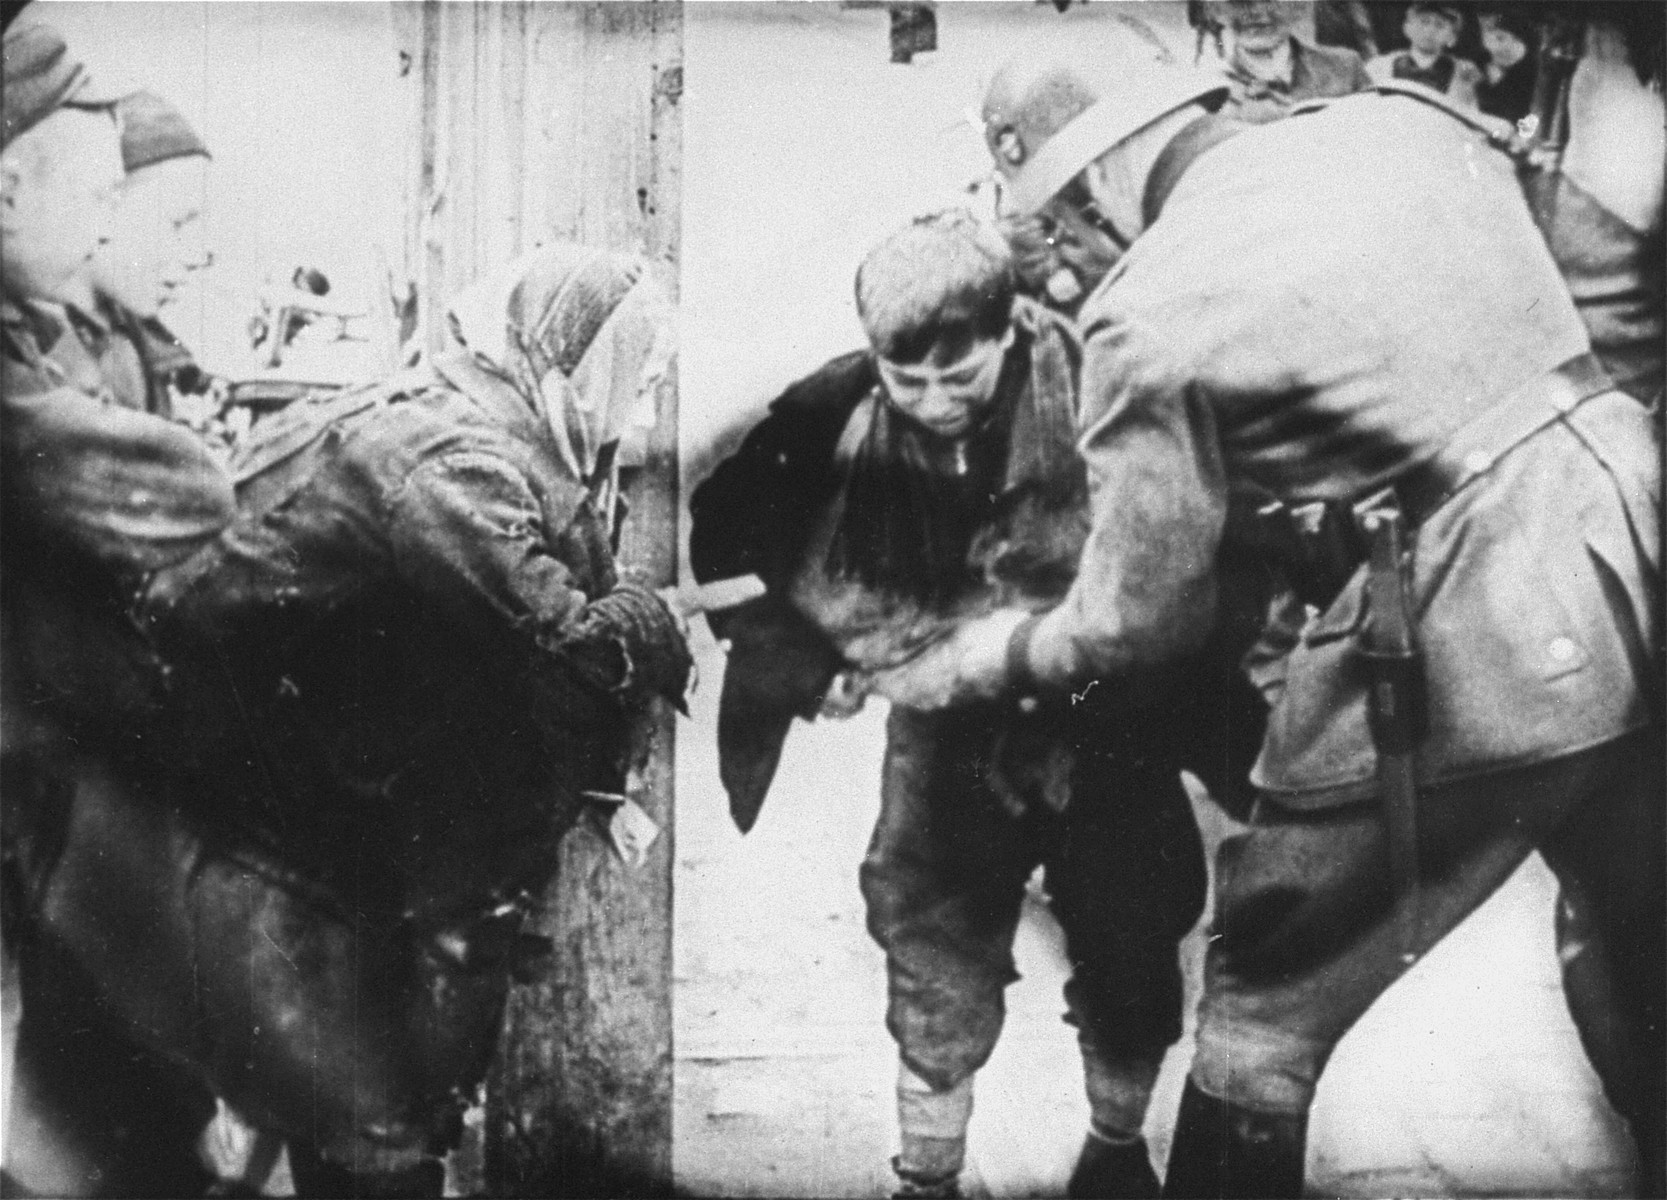 A young boy caught smuggling in the Warsaw ghetto by a German policeman.